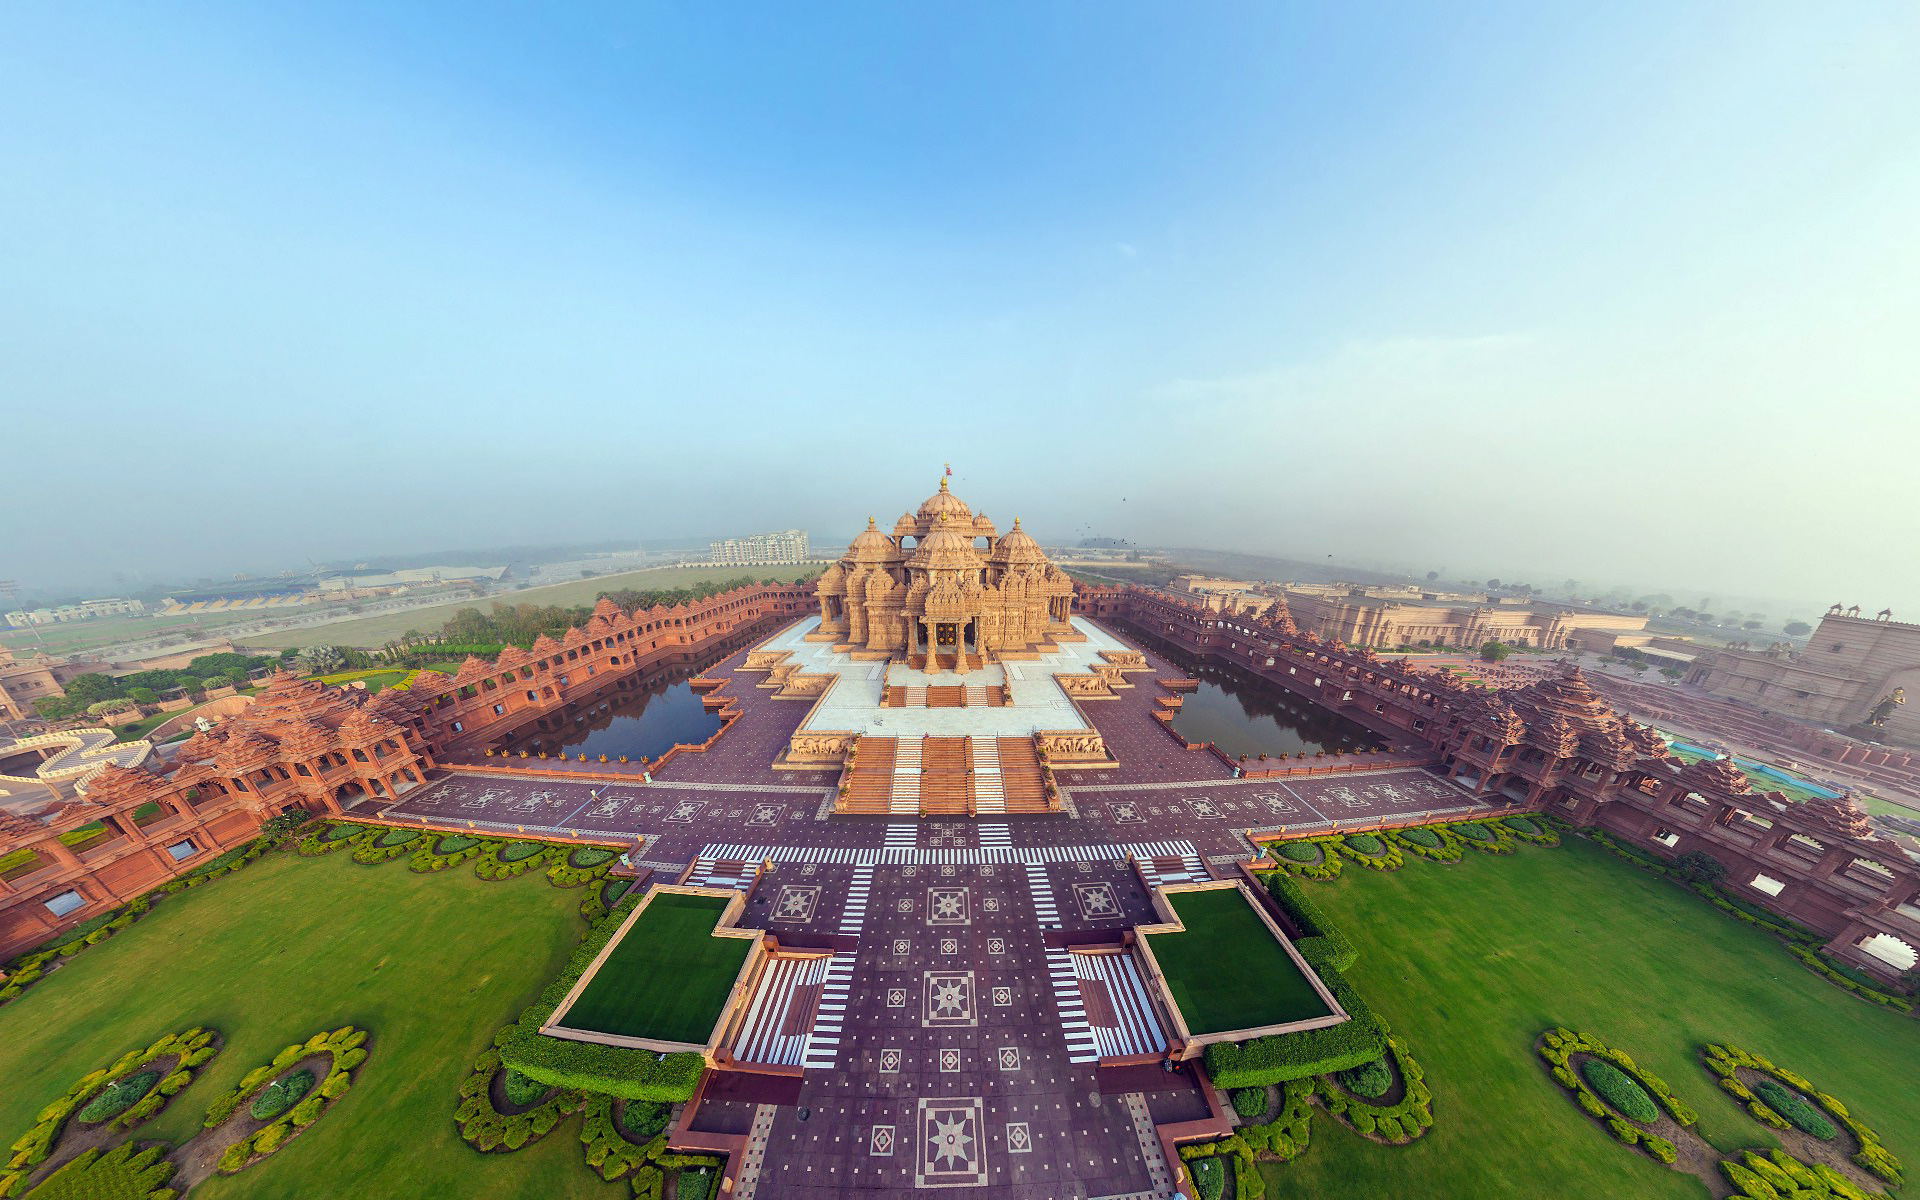 Akshardham-Hindu-temple-complex-in-Delhi-India